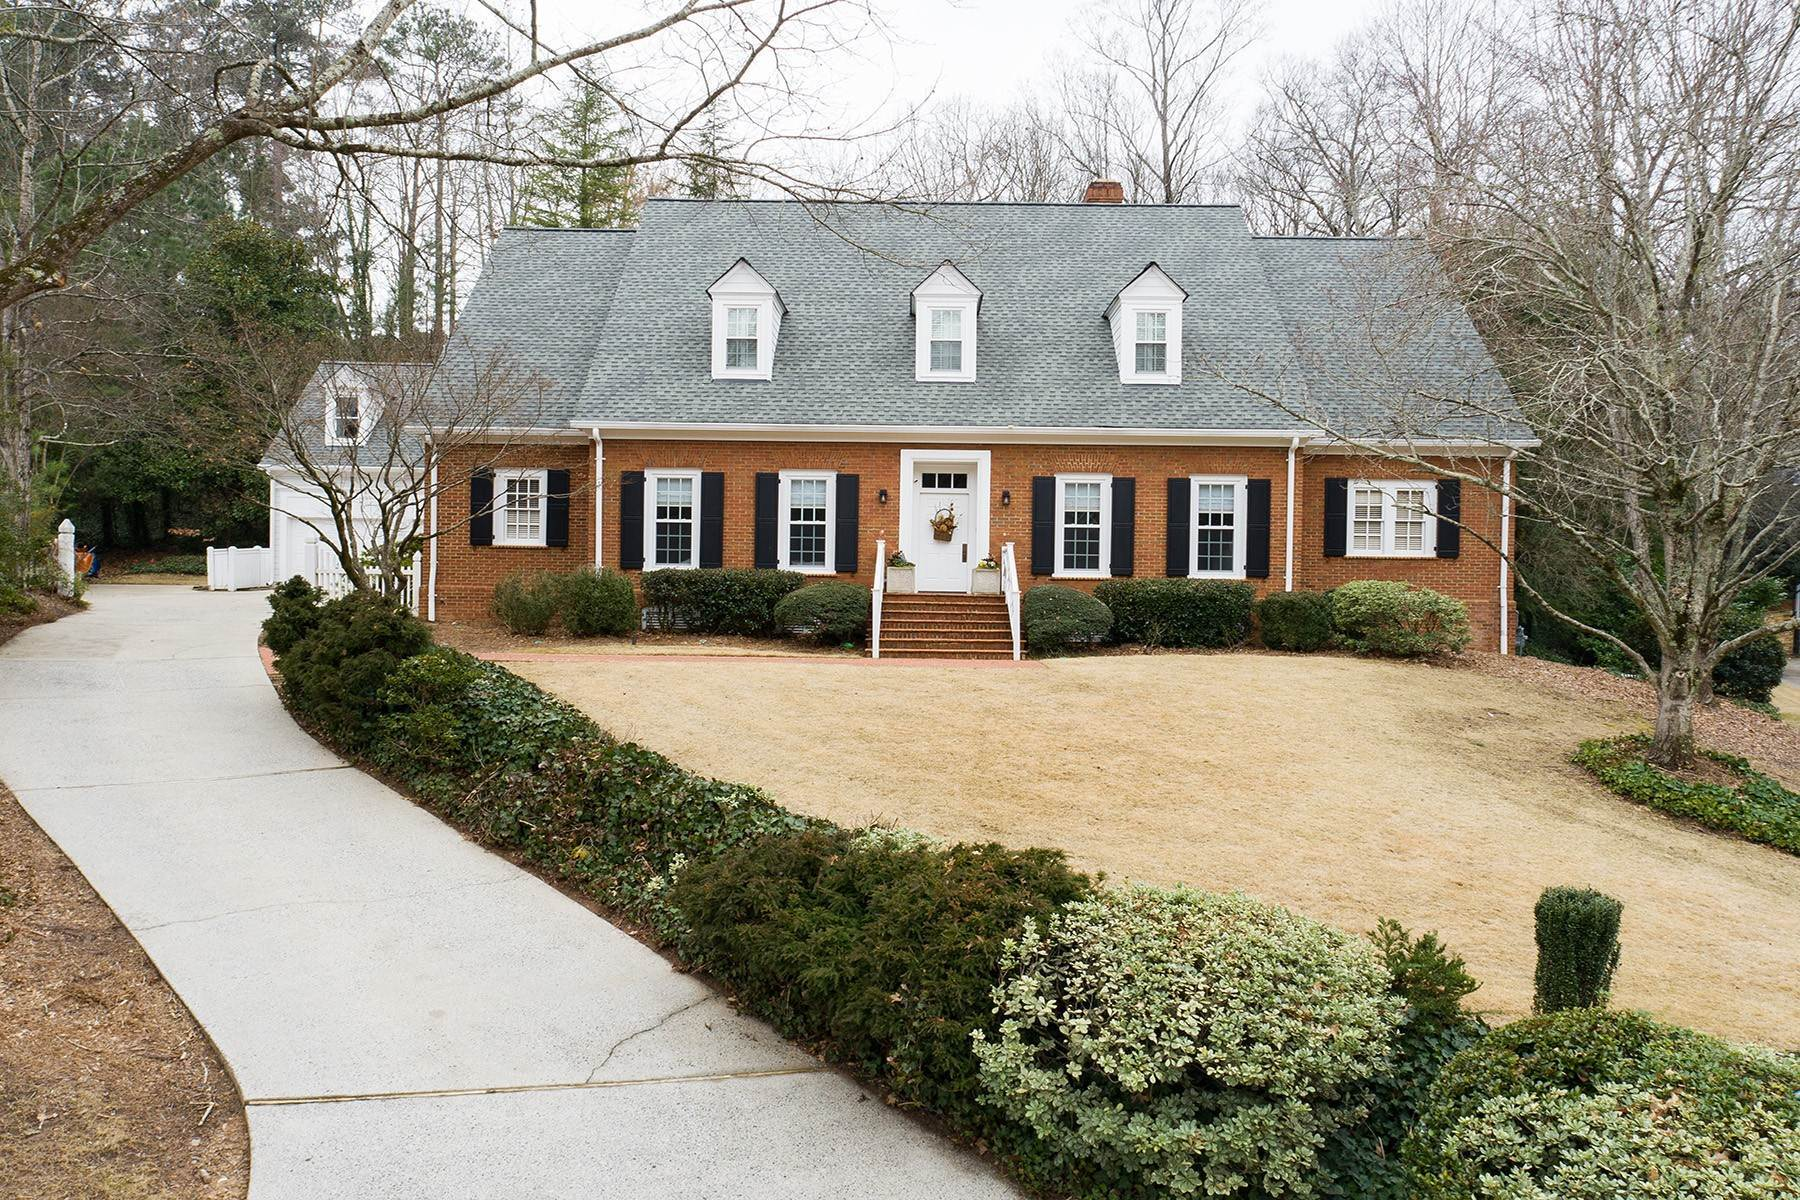 Single Family Homes for Active at Great Spring Offering - Handsome Goodsell Built Home on Quiet Cul-de-sac 60 Old Vermont Place Sandy Springs, Georgia 30328 United States